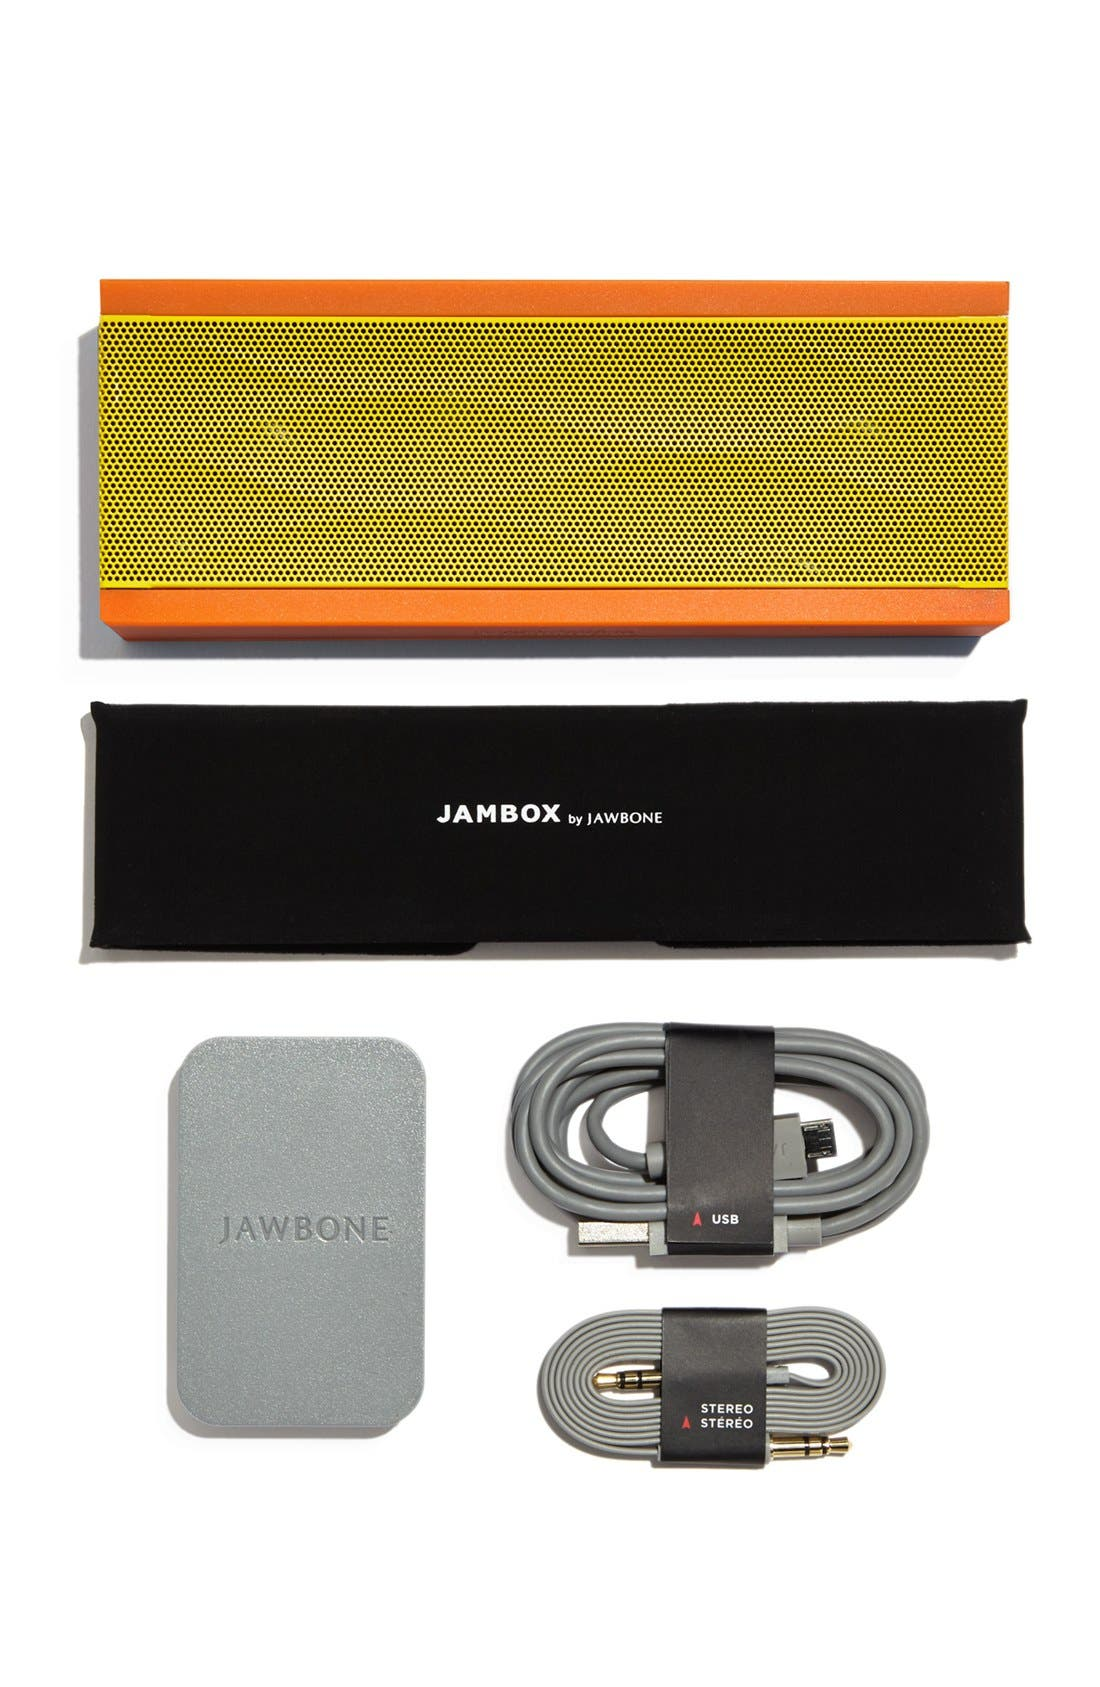 Main Image - Jawbone 'JAMBOX' Portable Wireless Speaker